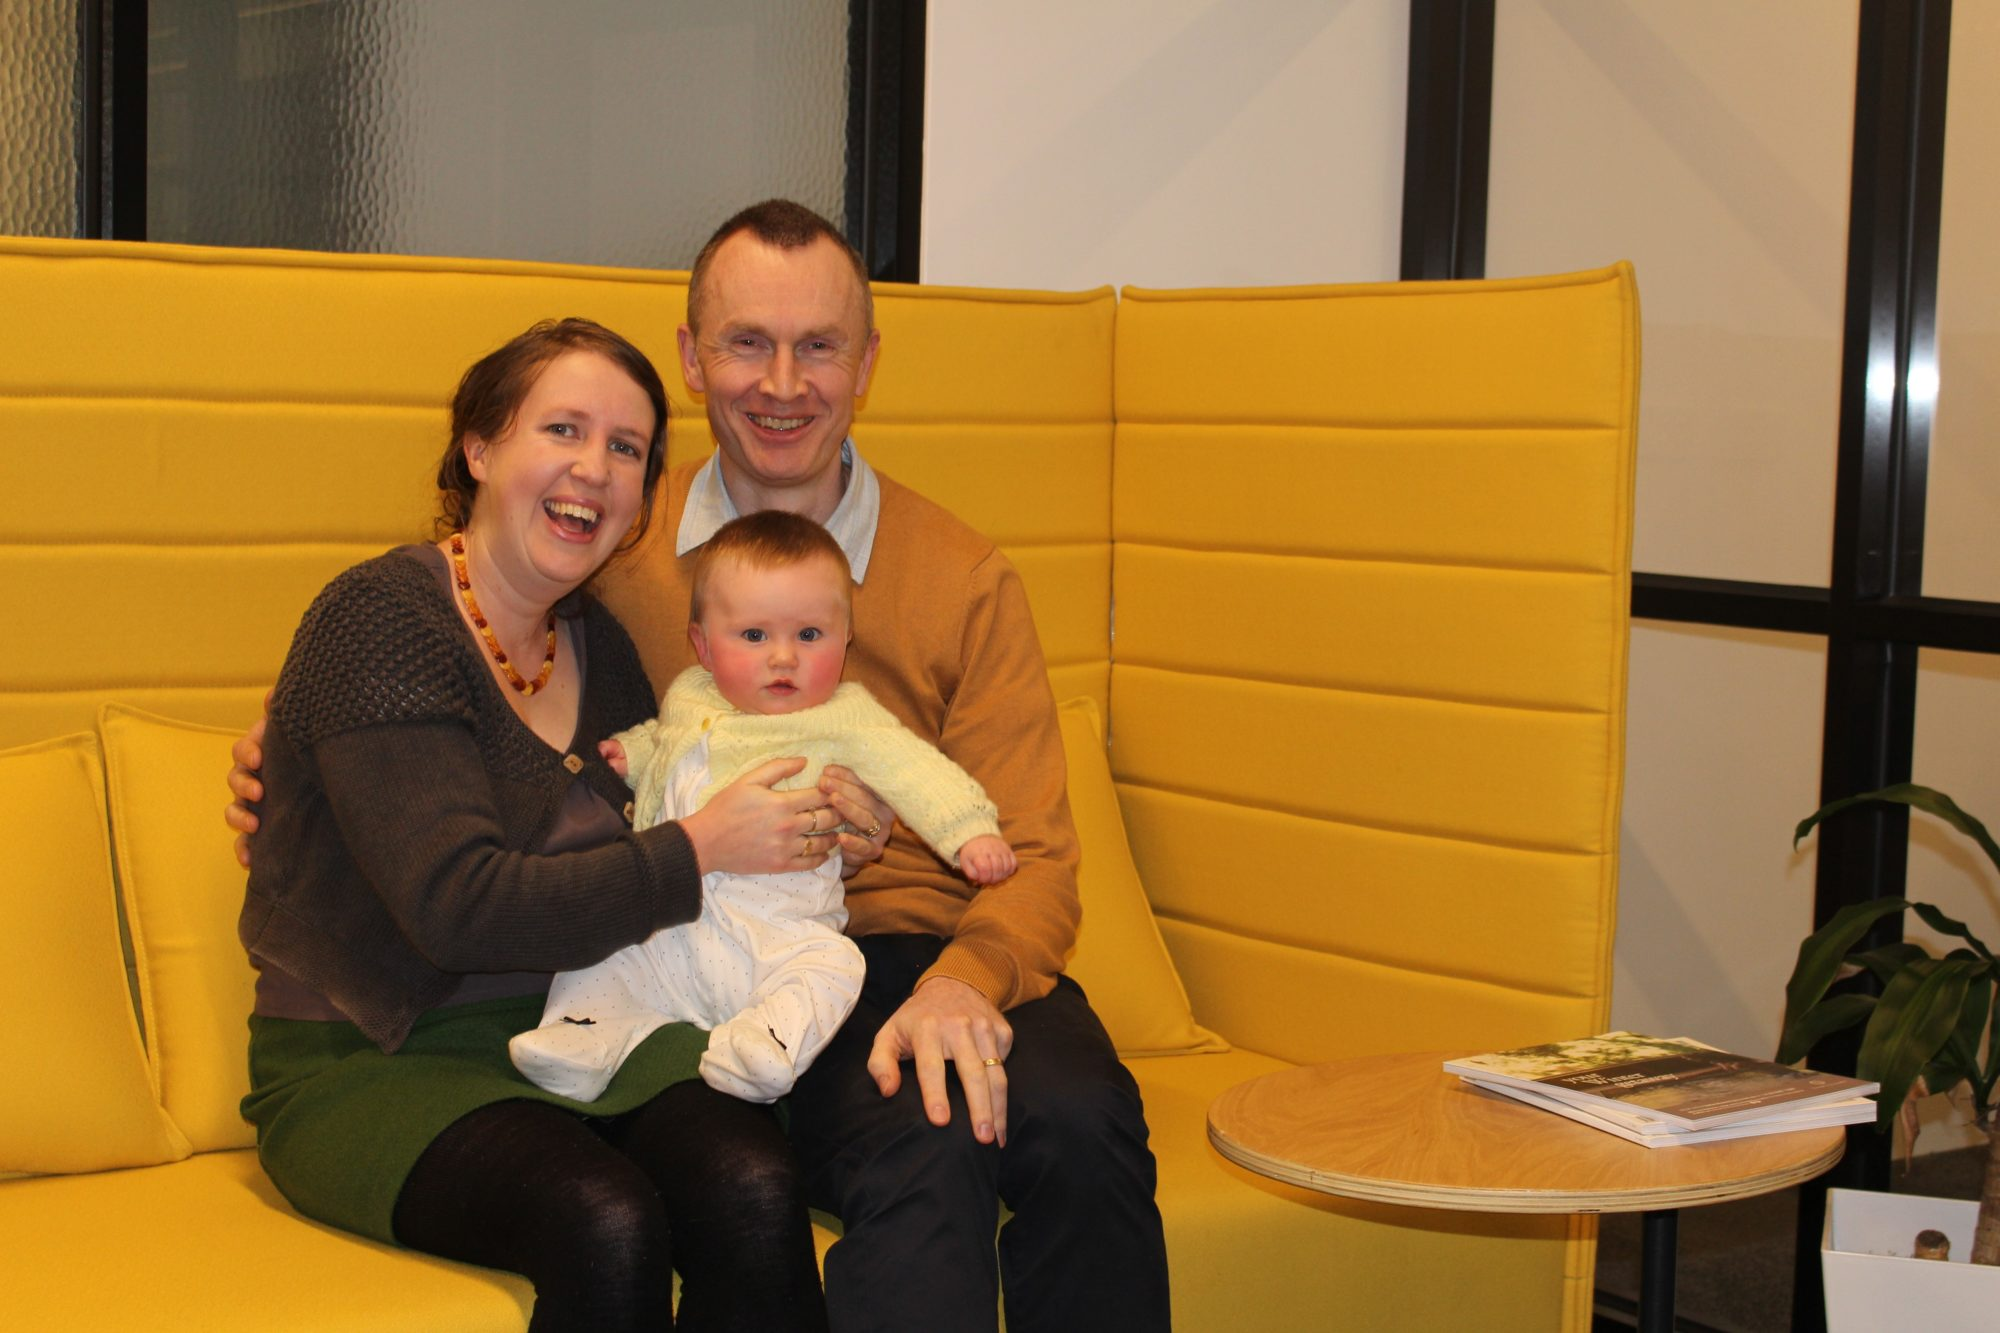 Architect Matthew Turner, wife Rachel and daughter Maeve